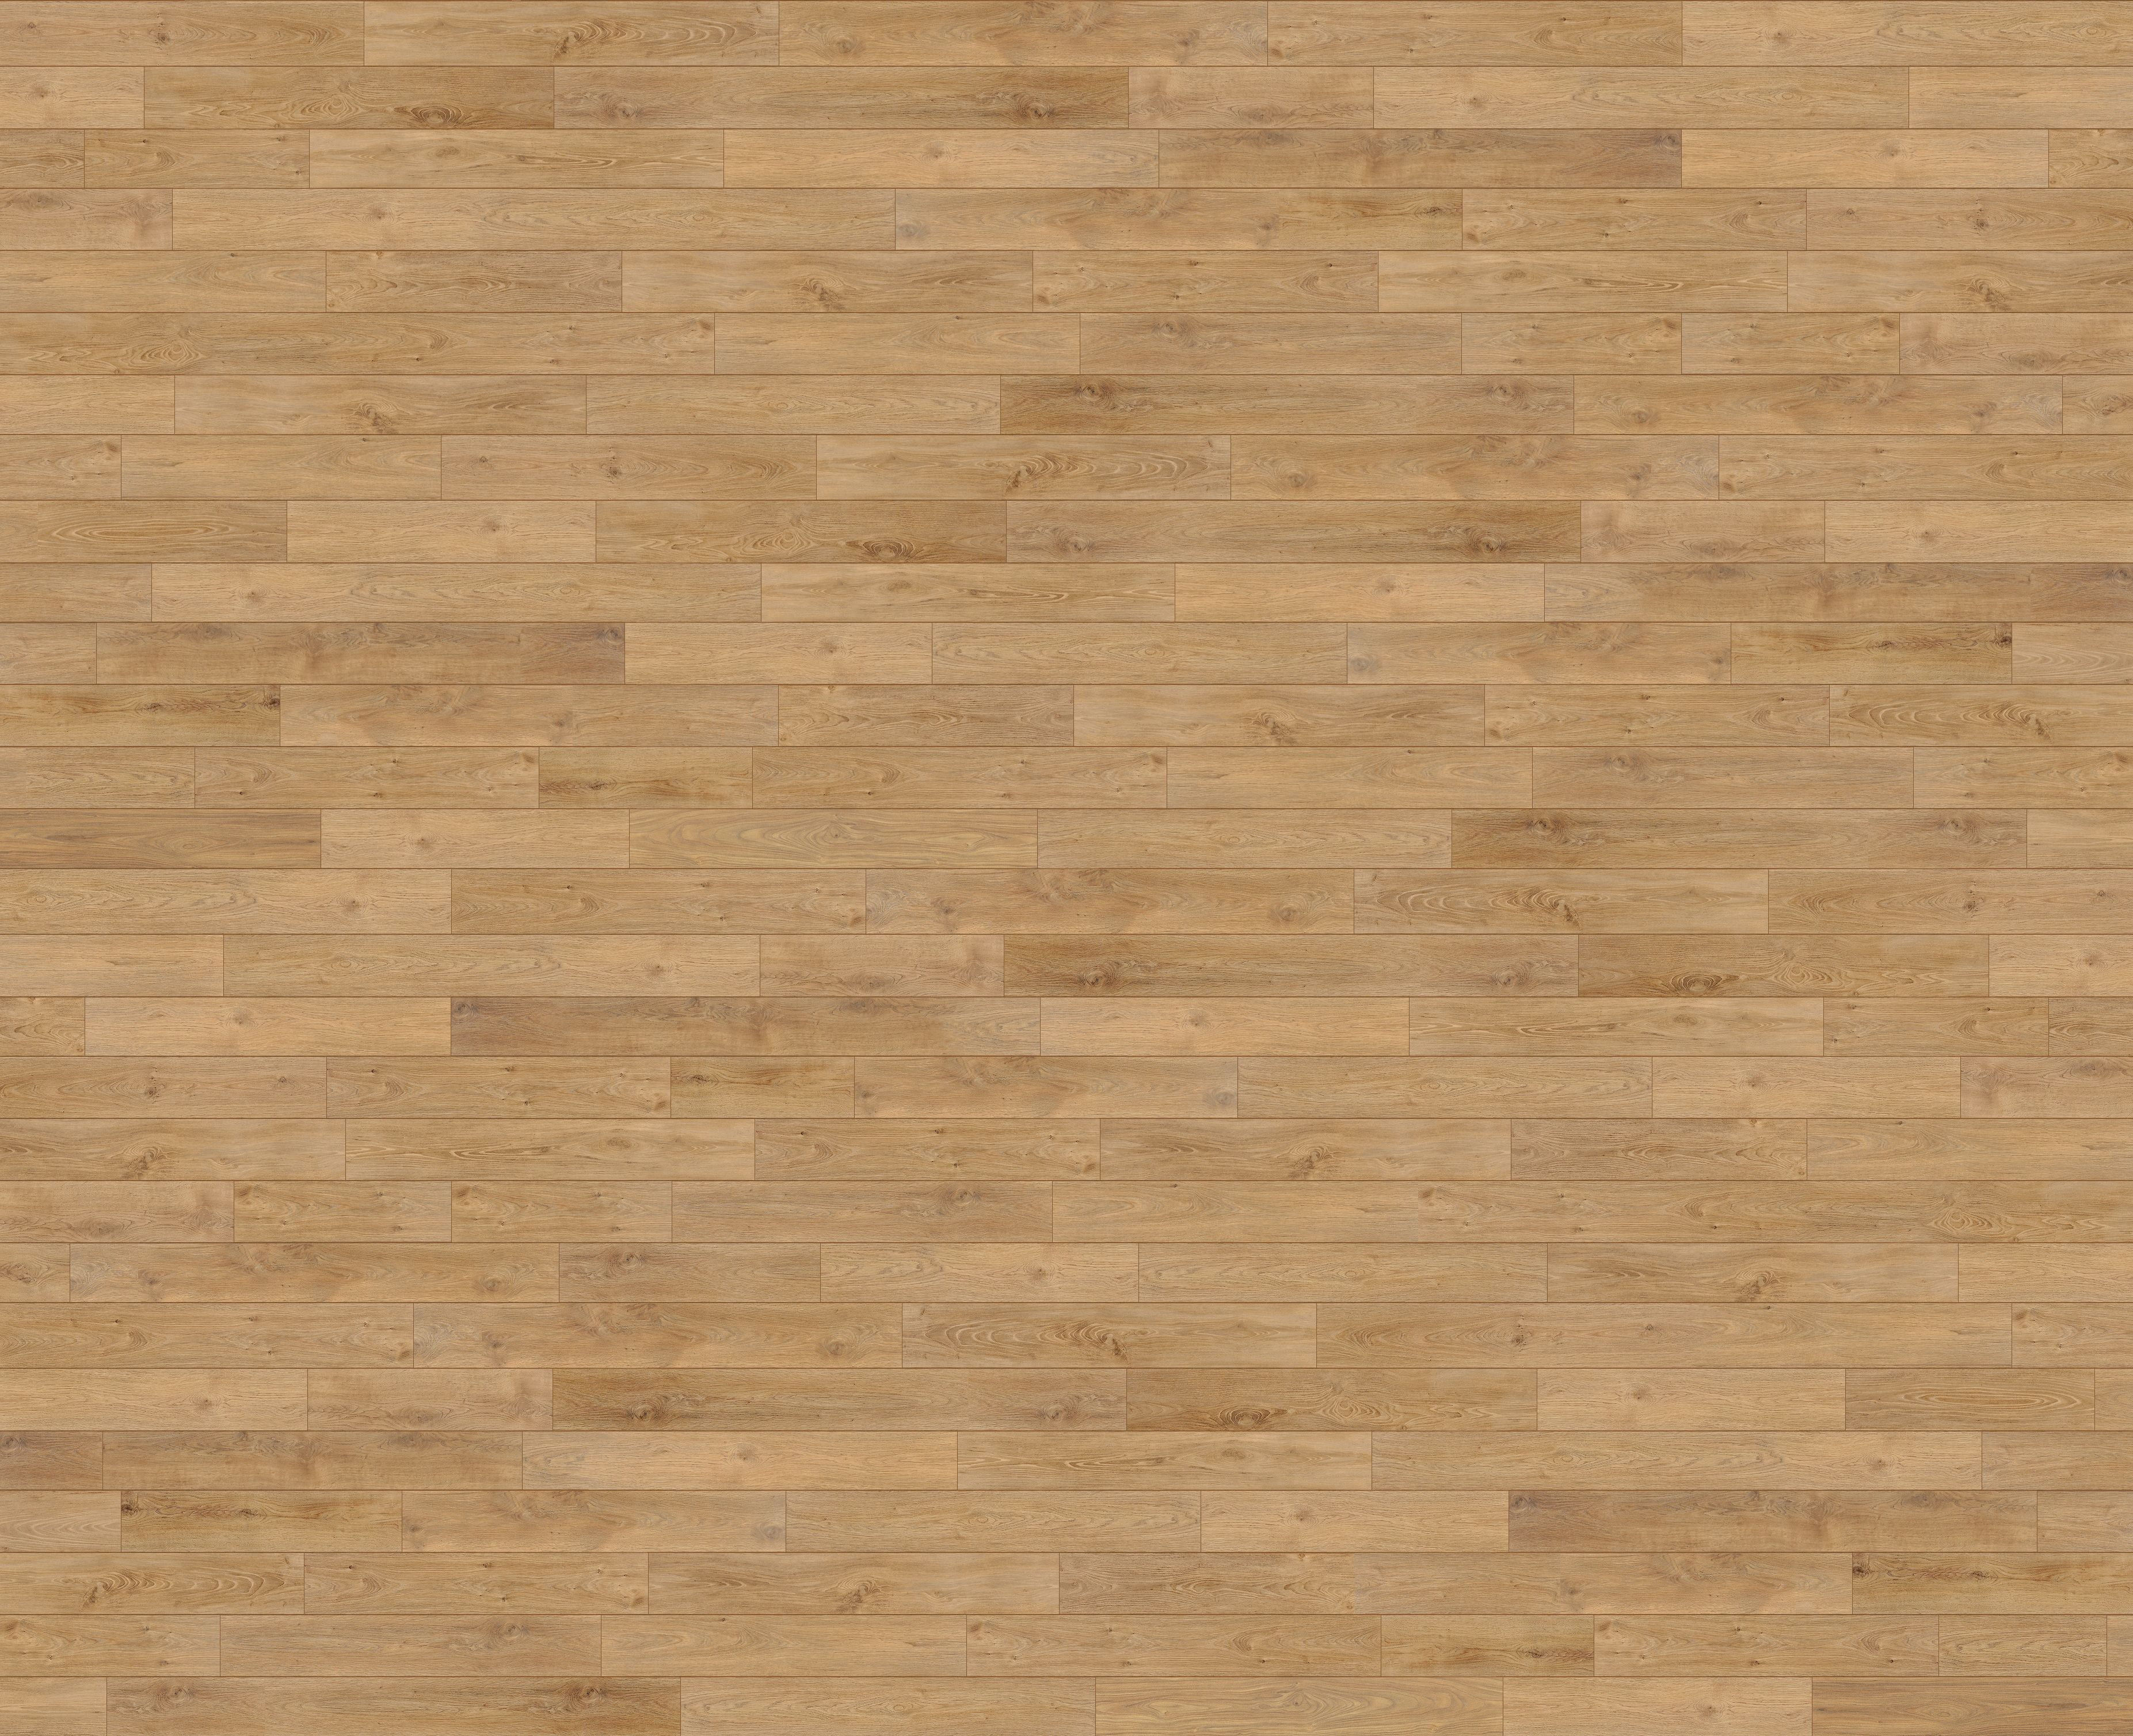 Bamboo floor top view google search project georgian high resolution x seamless wood flooring texture timber background teak dailygadgetfo Image collections